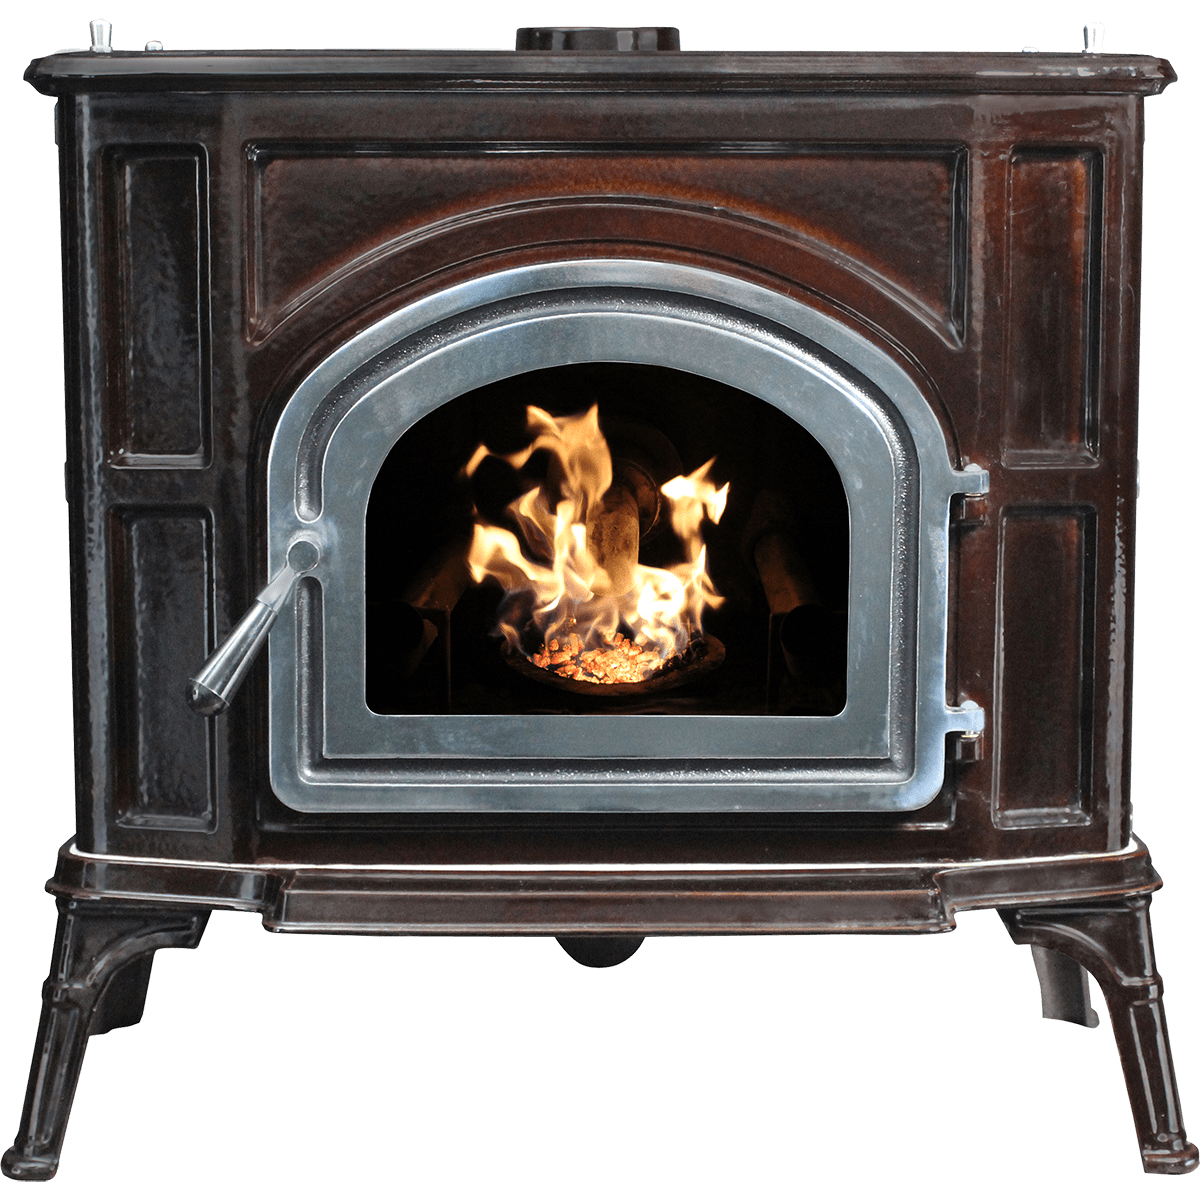 Breckwell Spc50 Pellet Stove